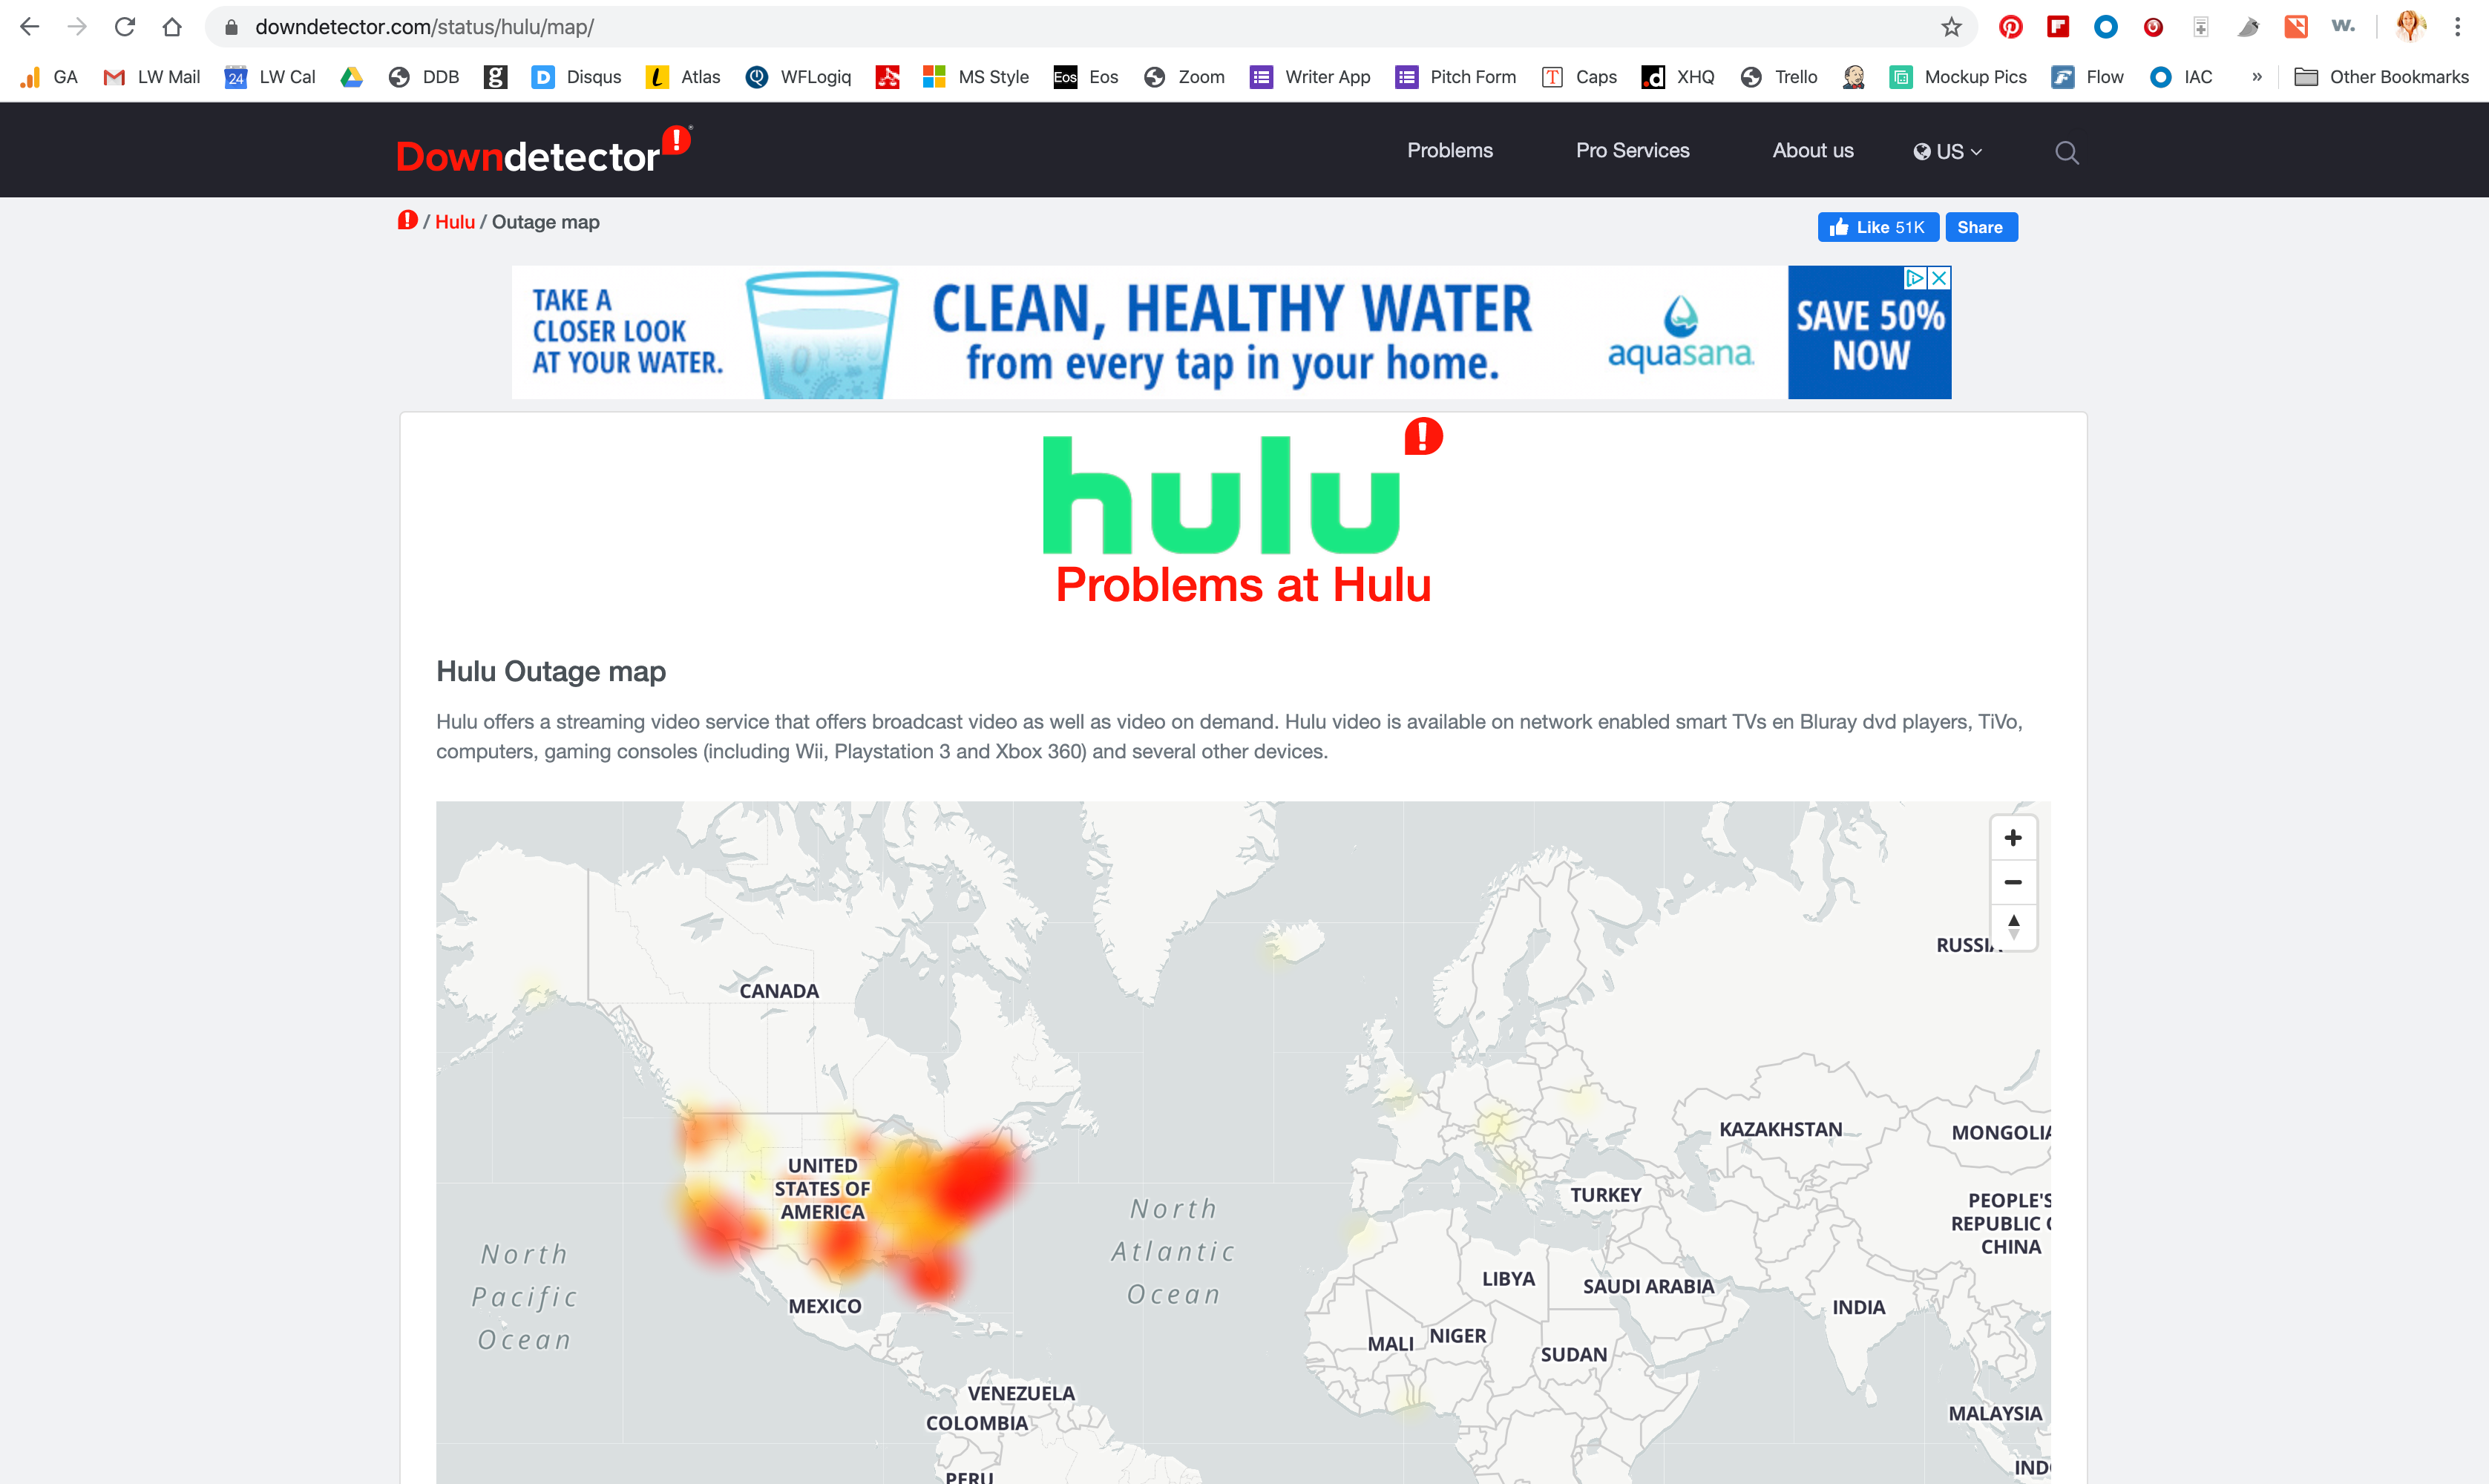 Screenshot of the Hulu Live Outtage Map on Downdetector.com.